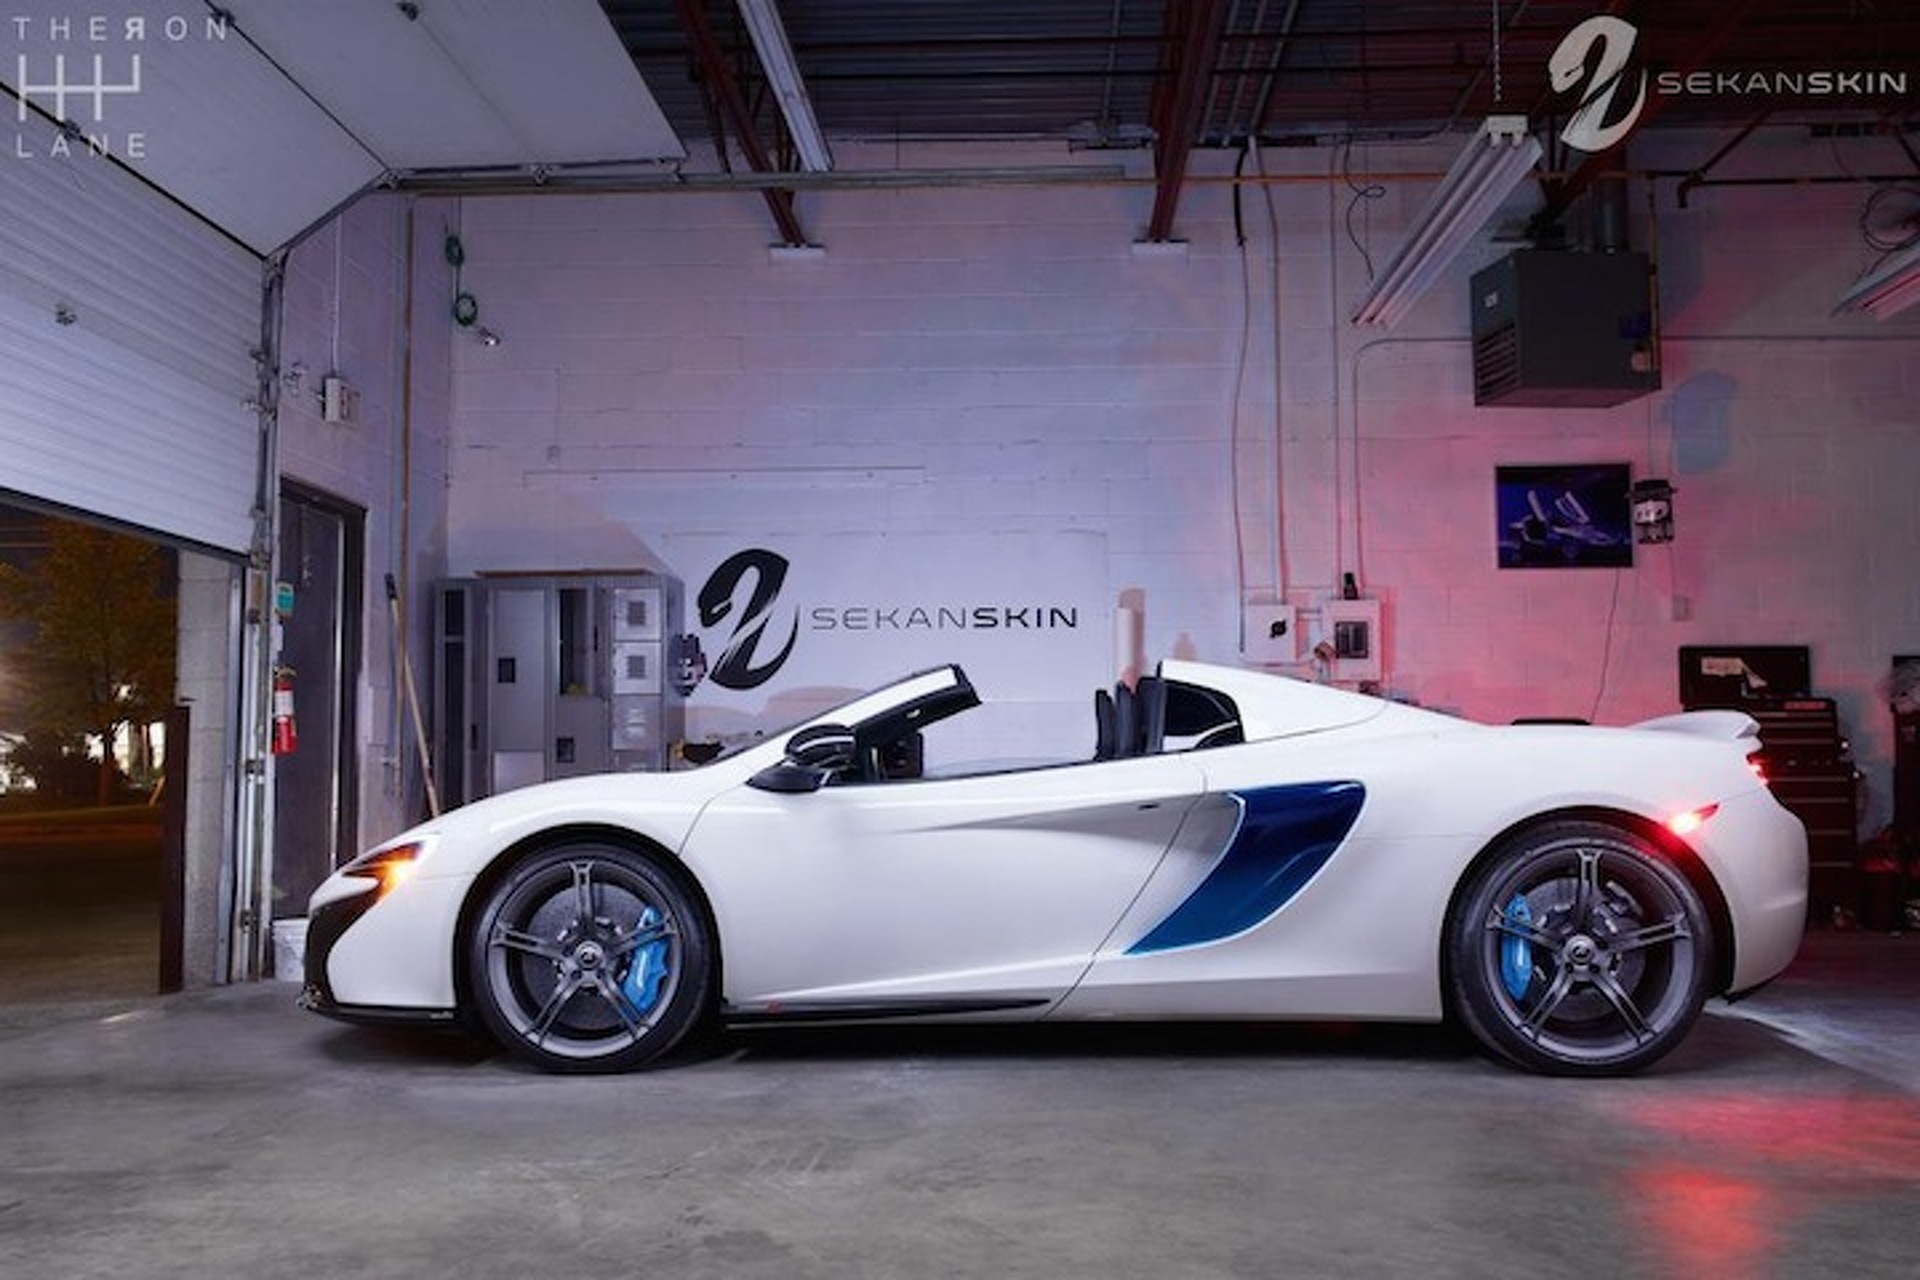 Deadmau5 is Giving Uber Rides in his New McLaren 650S